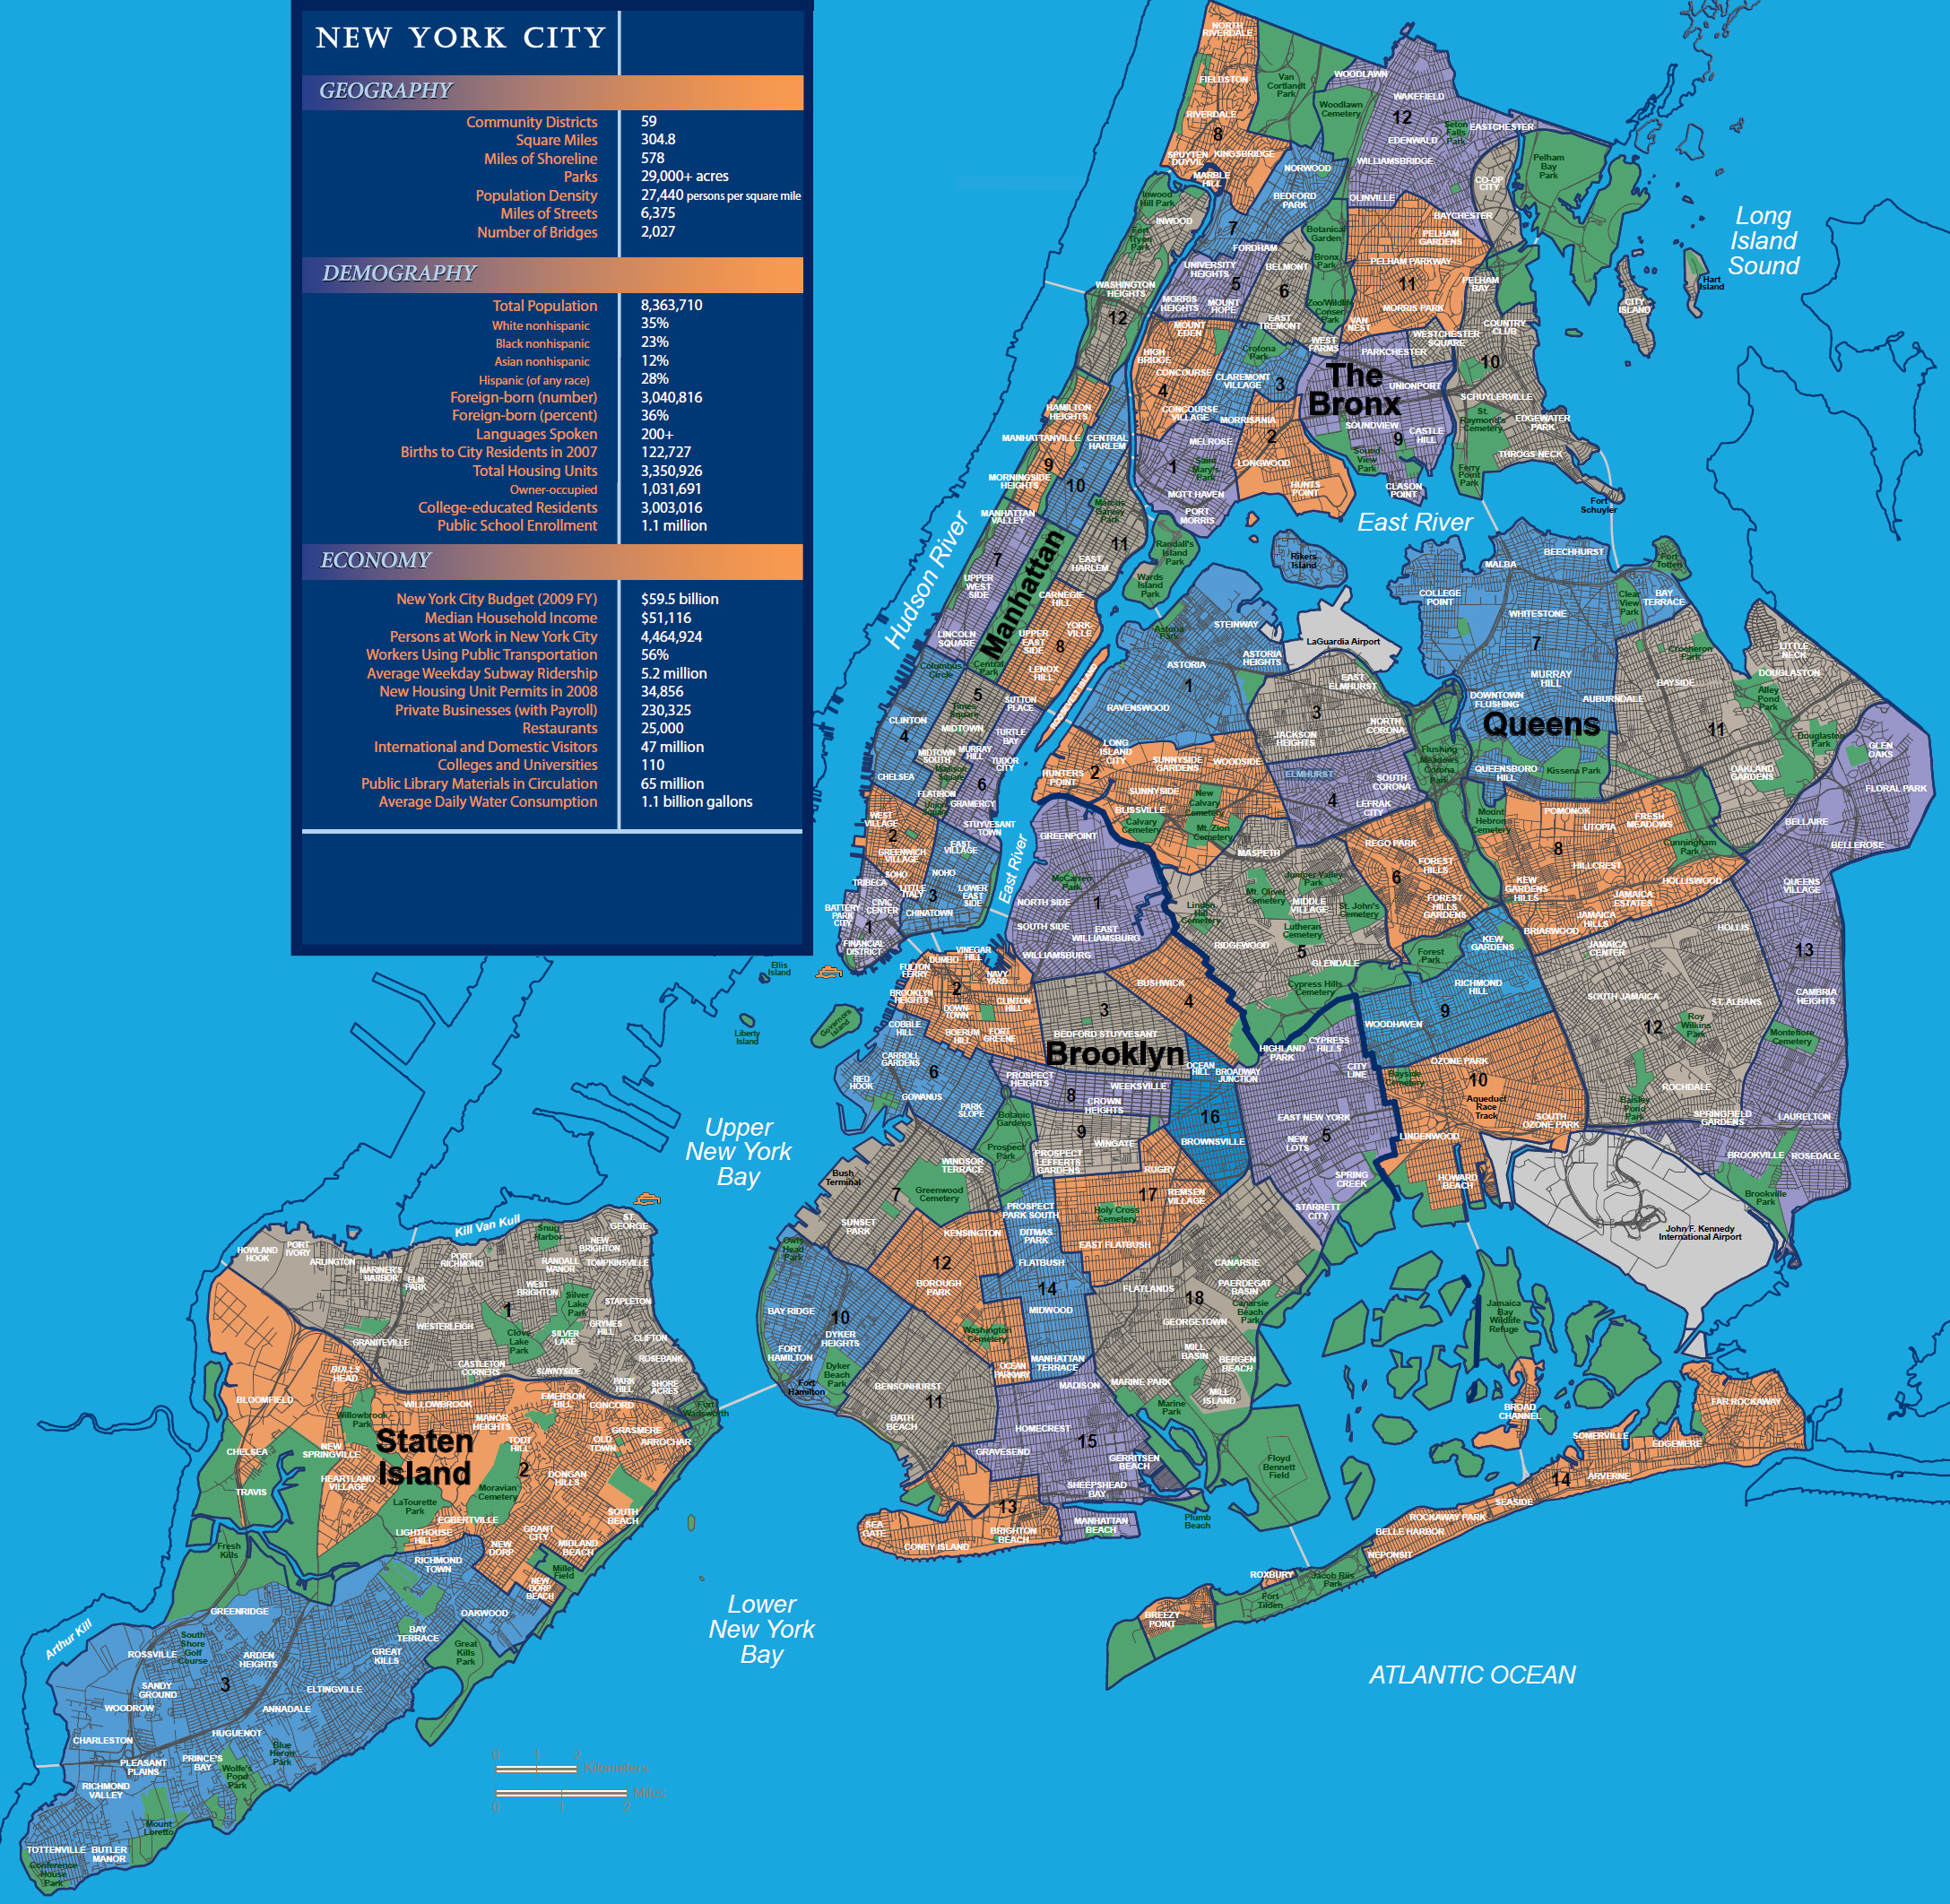 New York City Neighborhoods Map   WoD Gotham